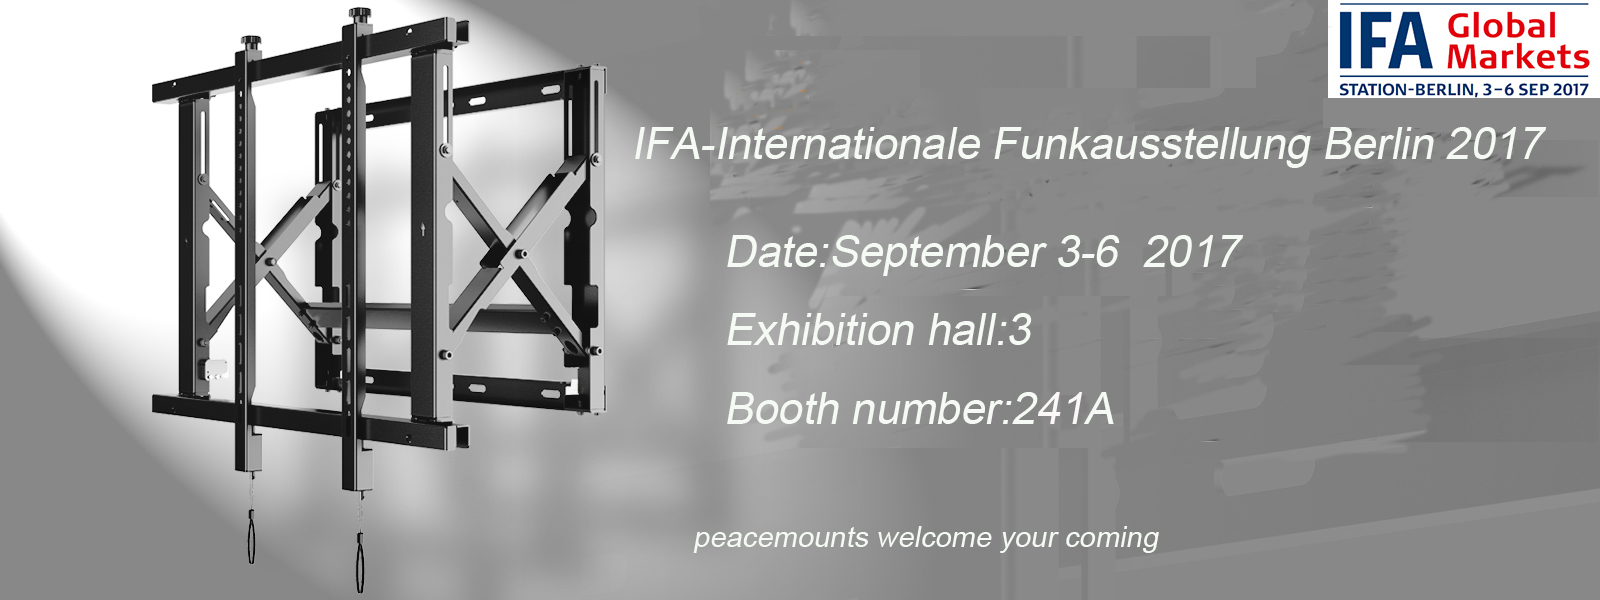 PEACEMOUNTS will attend the IFA